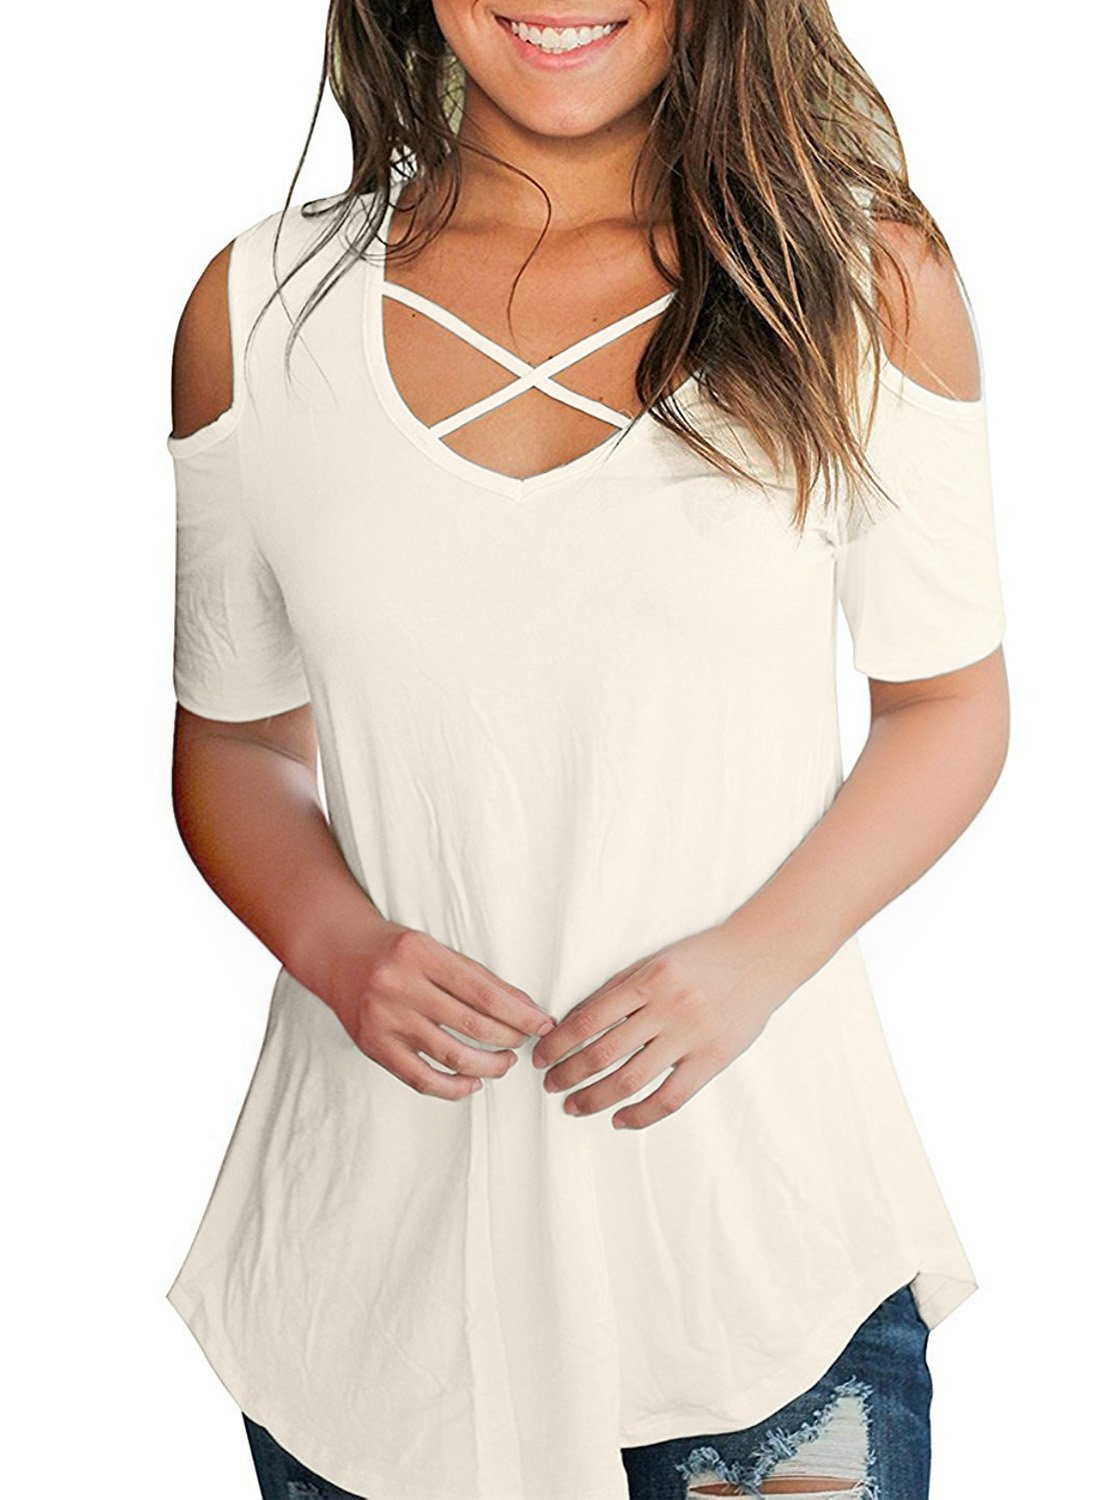 Women's Loose Criss Cross Cold Shoulder Short Sleeve Summer T Shirts Tunic Tops Blouses White Large